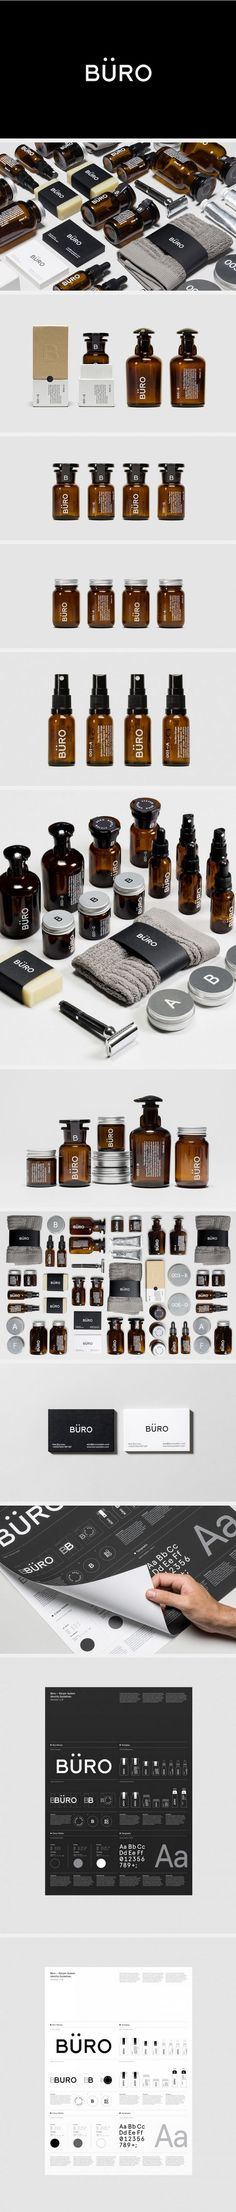 (2) Büro System #identity #packaging #branding PD | design | brand identity & logos | Pinterest / Branding / Packaging / Ideas / Inspiration / Minimalist / Men / Beauty / cosmetics / Skin Care / Soap / Bottle / Simple / Clean / Black and White / Modern / Elegant / Minimal